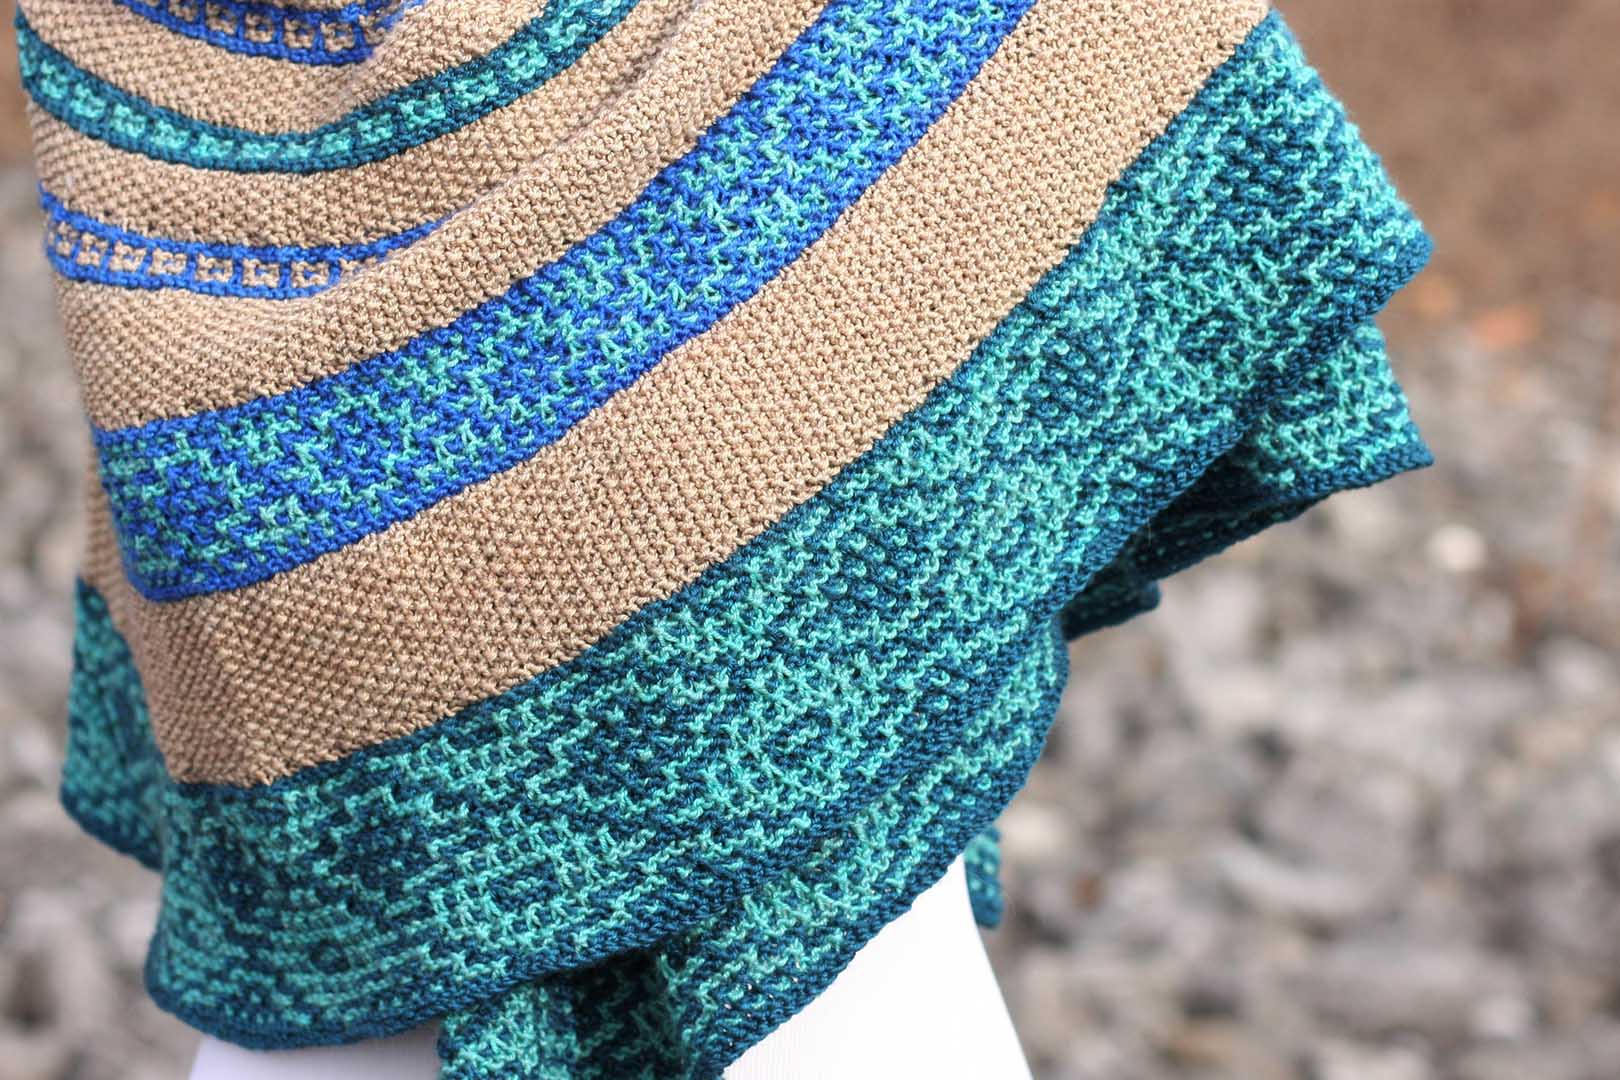 Simone's educational background in art and languages is evident in Markanda, a mosaic slip-stitch shawl that reflects the beauty of the ancient bazaars along the Silk Road, a network of ancient trade routes that connected East Asia and Southeast Asia with East Africa, West Asia, and Southern Europe.